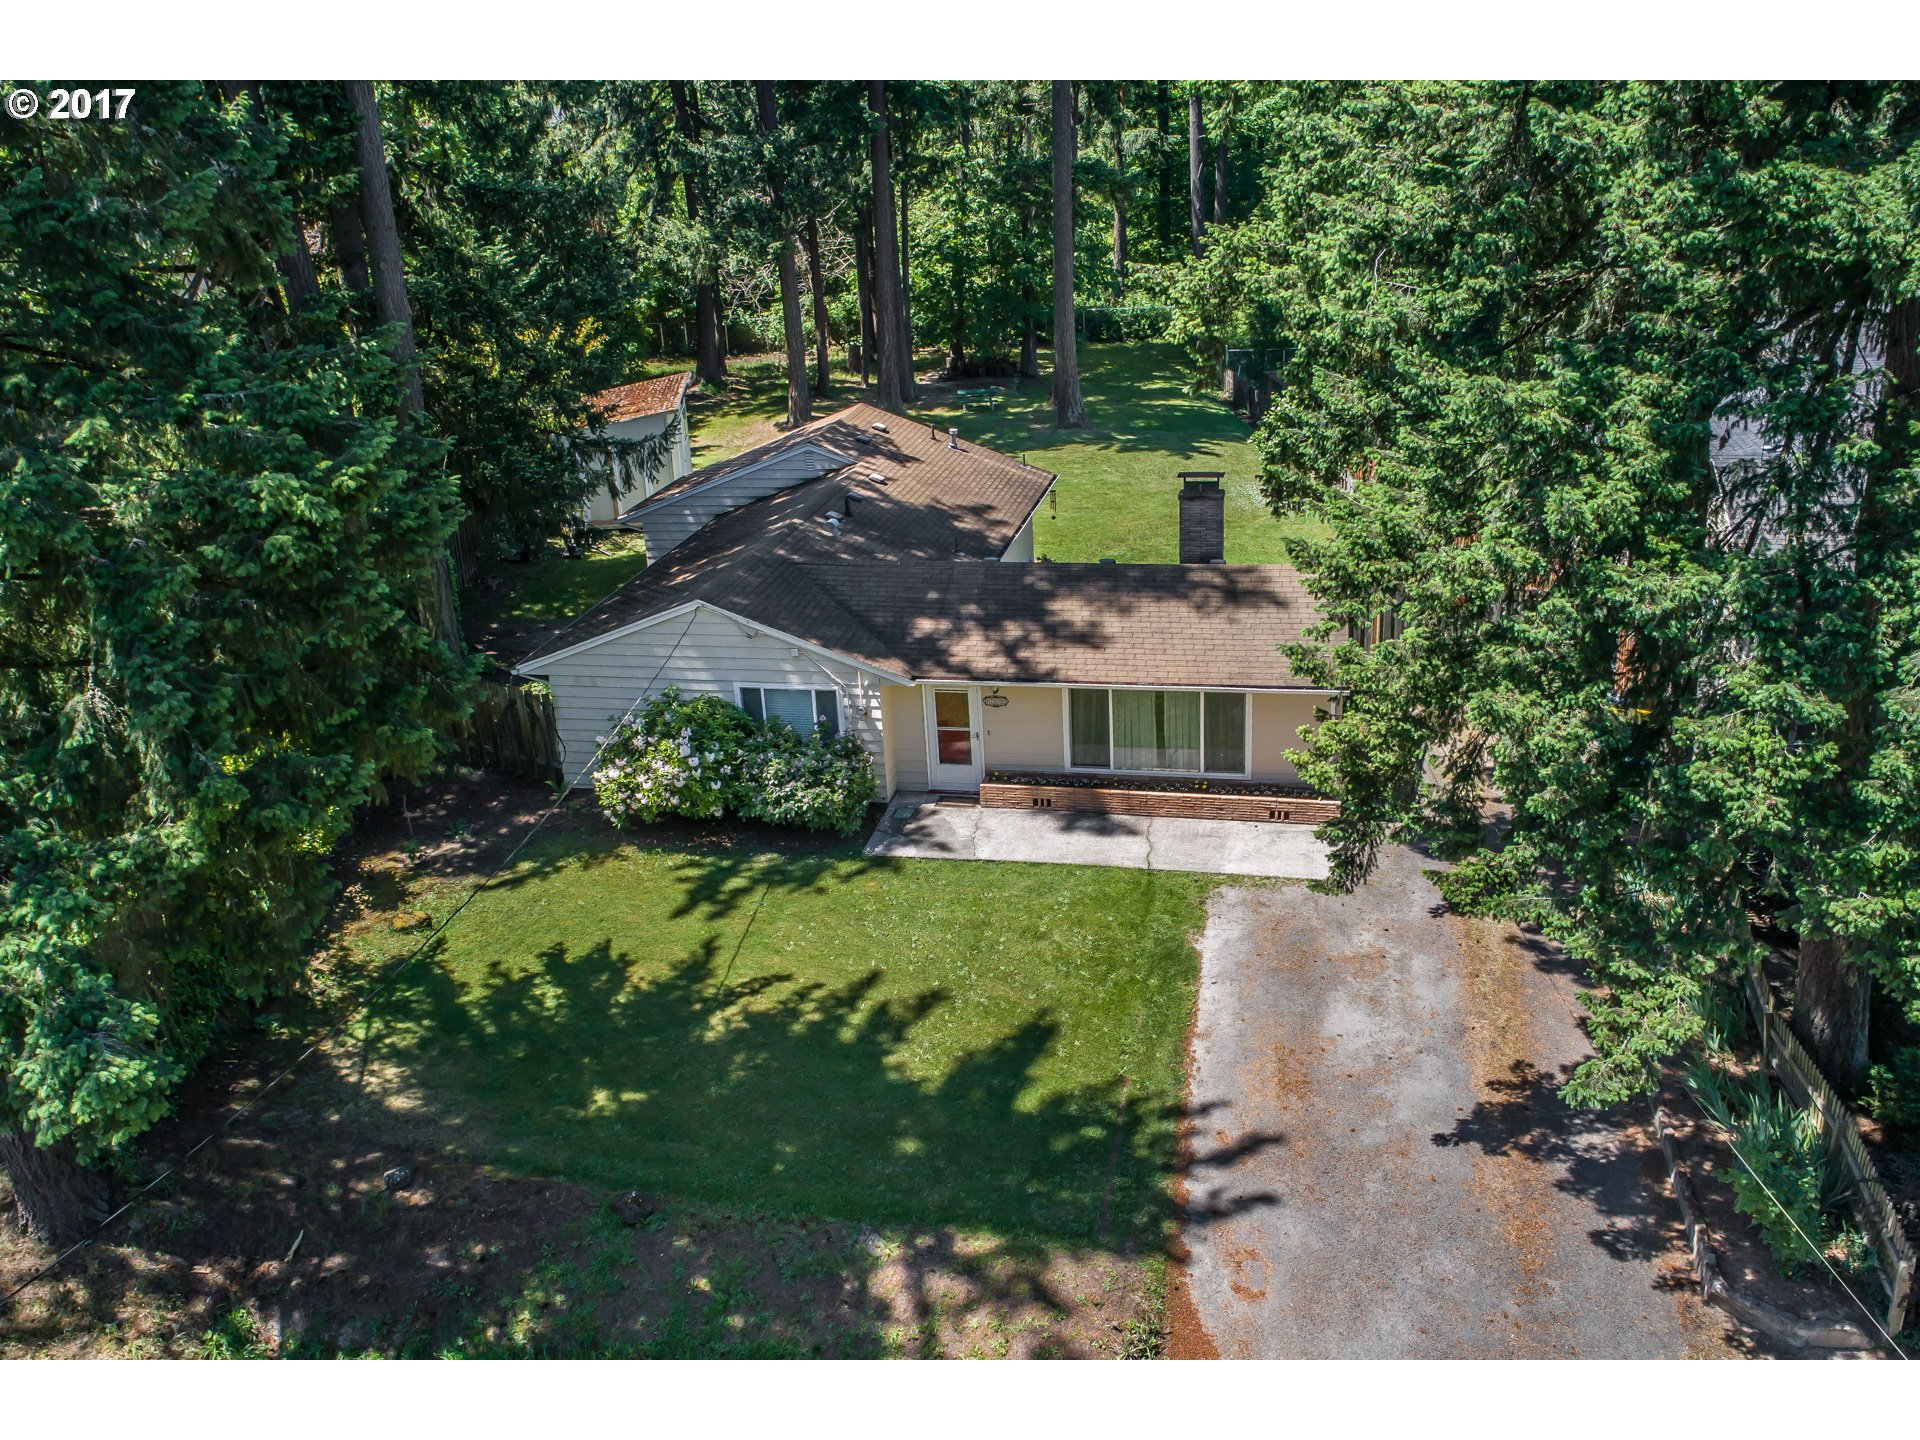 125 NW MEADOW DR, Beaverton, OR 97006